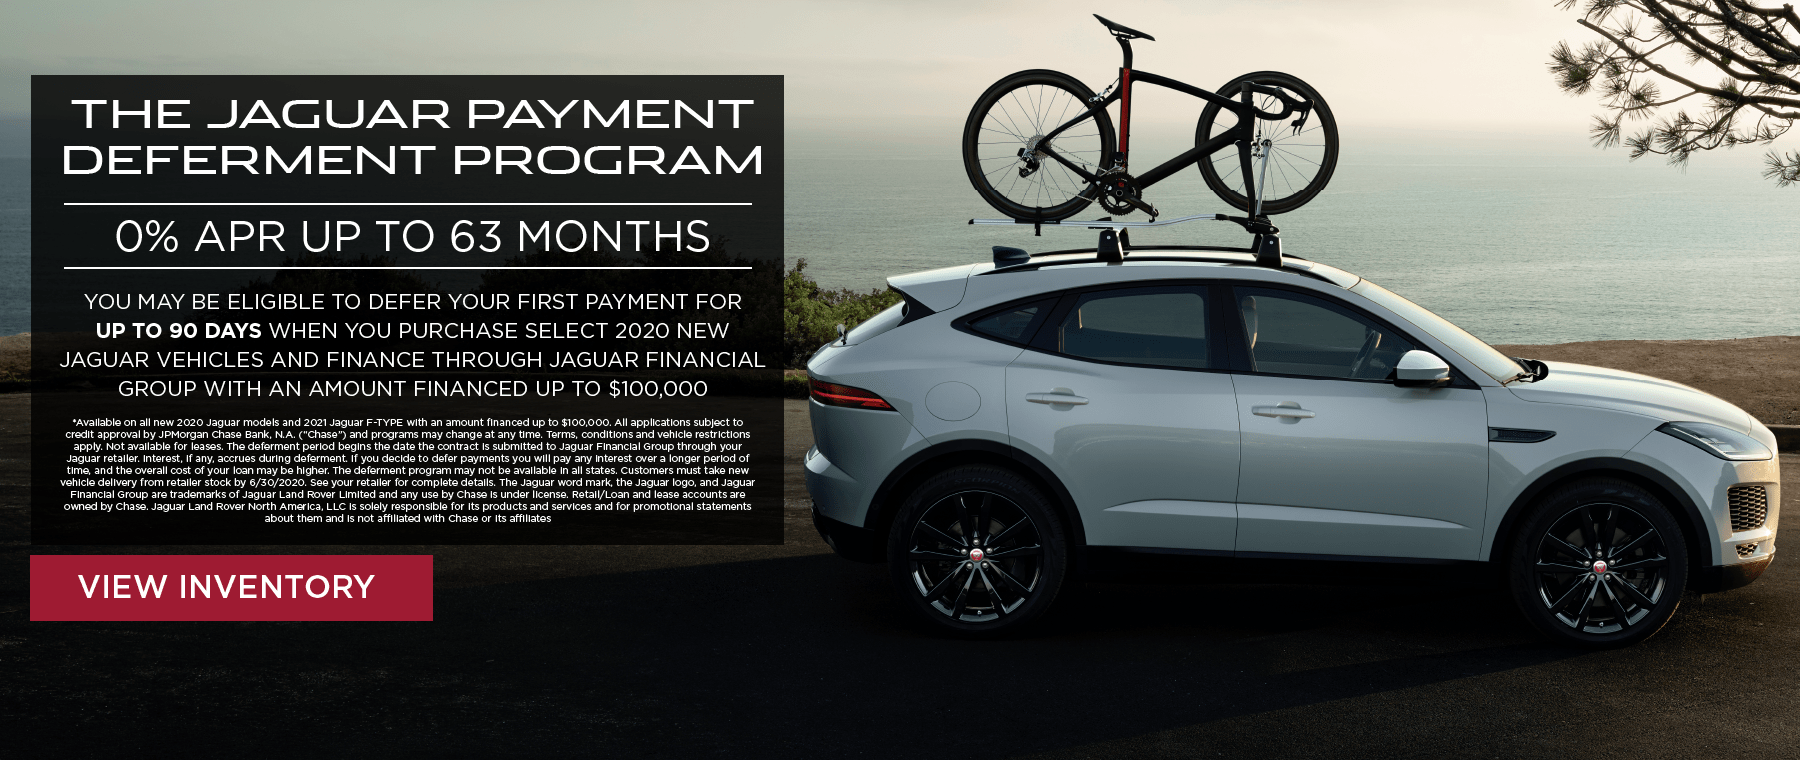 THE JAGUAR PAYMENT DEFERMENT PROGRAM. 0 PERCENT APR UP TO 63 MONTHS. YOU MAY BE ELIGIBLE TO DEFER YOUR FIRST PAYMENT FOR UP TO 90 DAYS WHEN YOU PURCHASE SELECT 2020 NEW LAND ROVER VEHICLES AND FINANCE THROUGH JAGUAR FINANCIAL GROUP WITH AN AMOUNT FINANCED UP TO $100,000. VIEW INVENTORY. WHITE JAGUAR E-PACE DRIVING DOWN ROAD OVERLOOKING OCEAN WITH BIKE ON ROOF RACK.